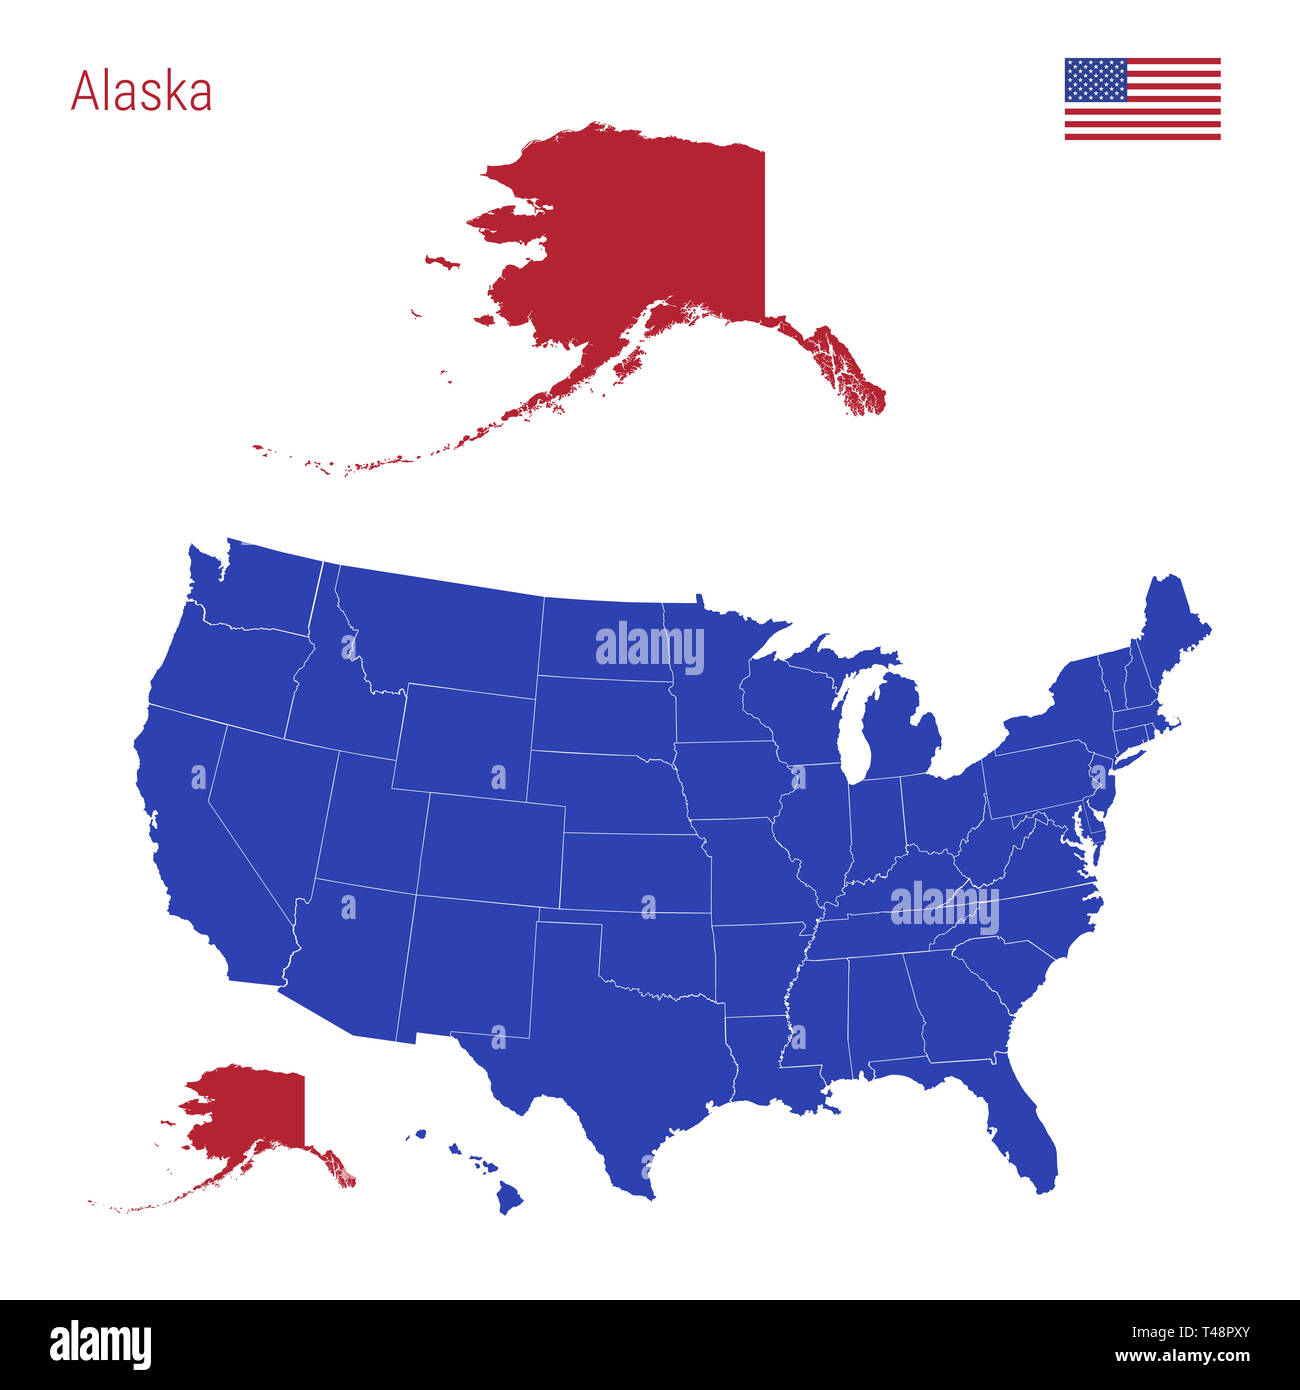 States Of United States Map.The State Of Alaska Is Highlighted In Red Blue Map Of The United